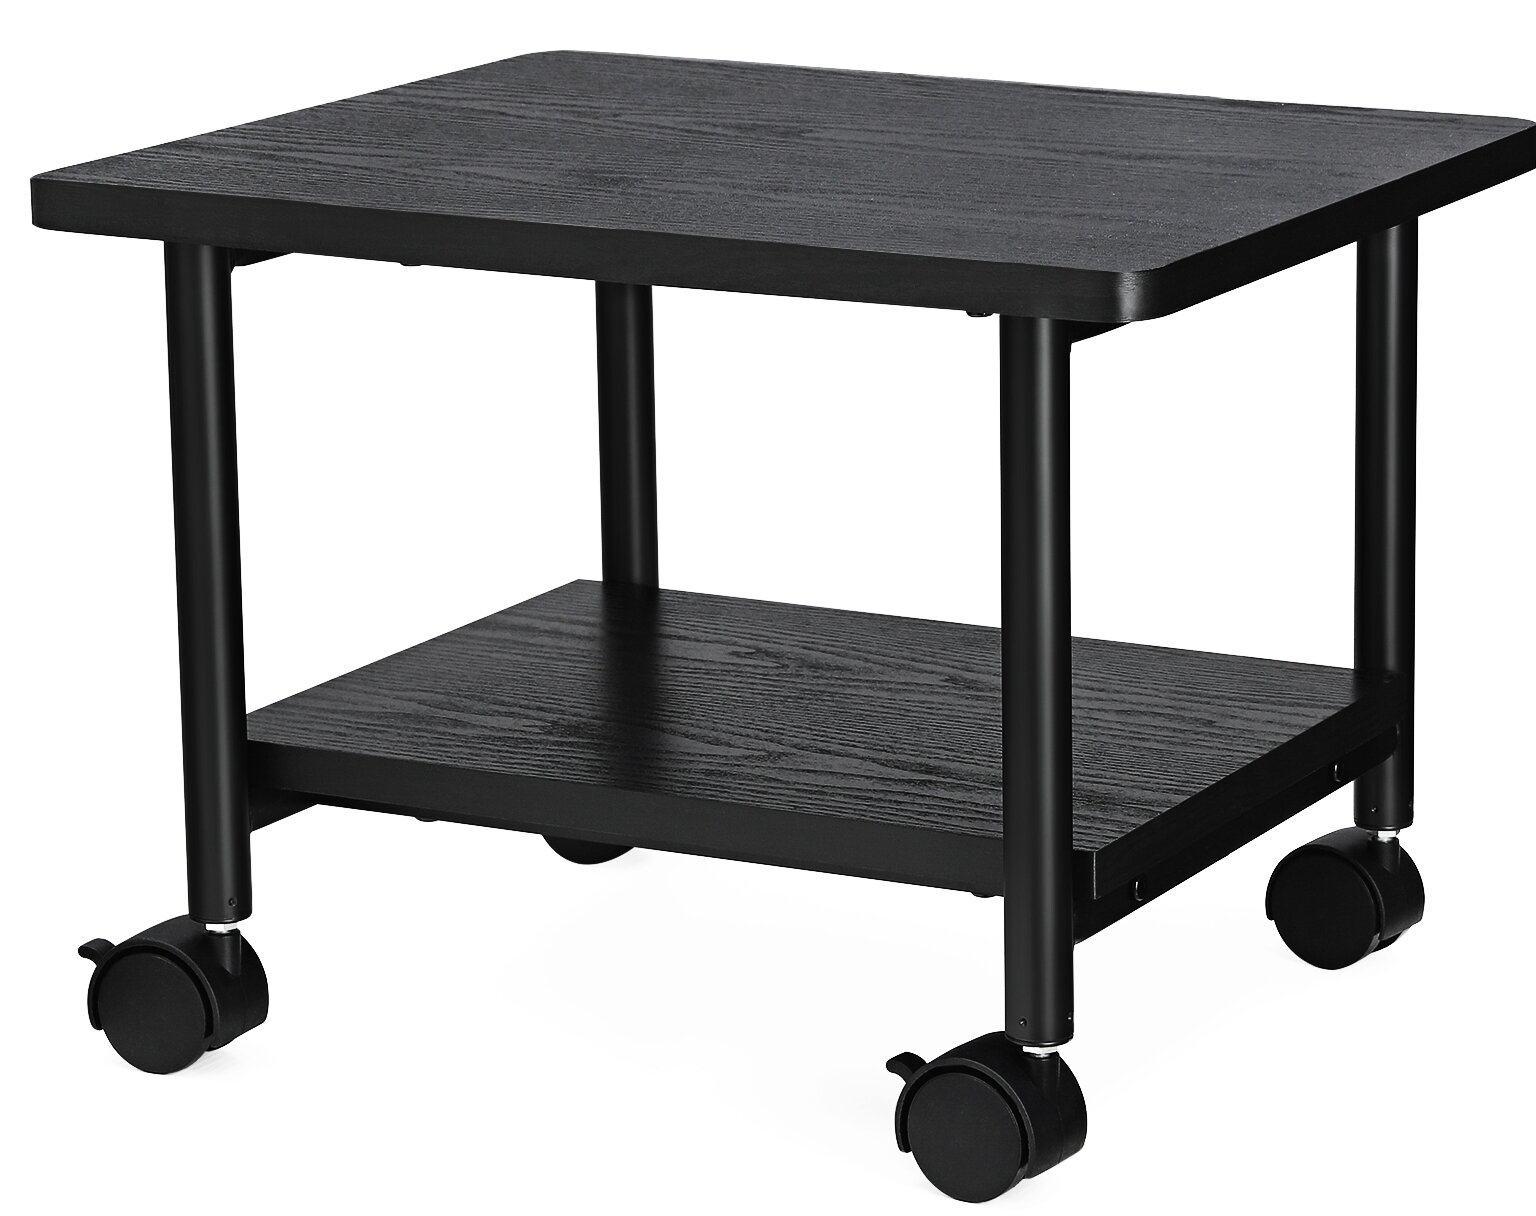 Songmics Under Desk Mobile Printer Stand with Shelf and Heavy Duty